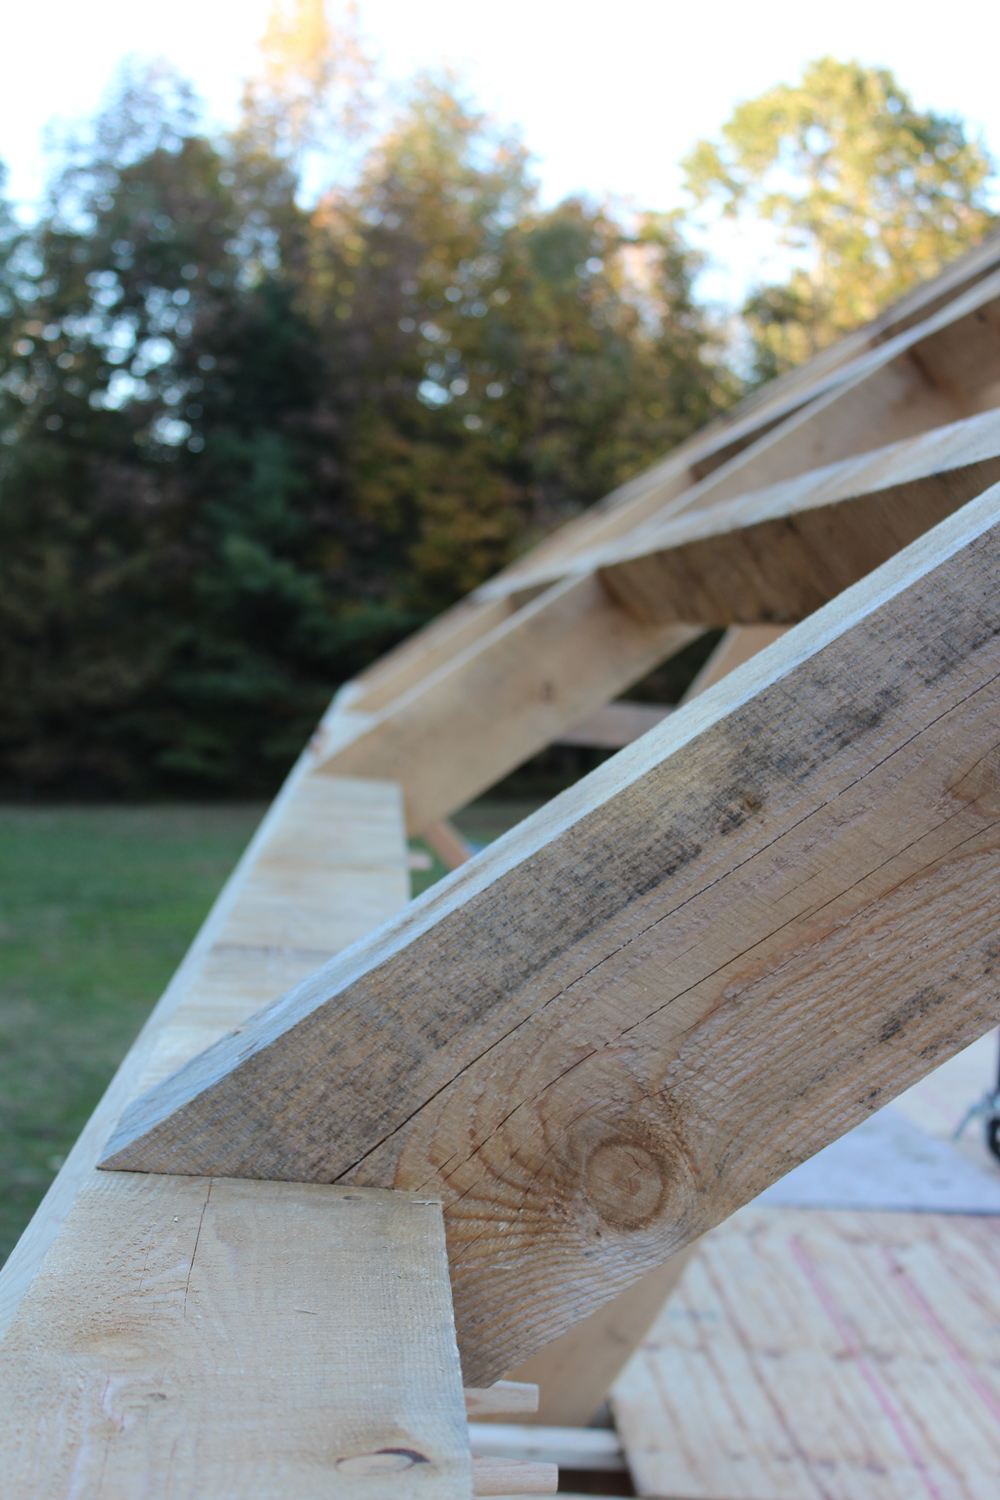 Timberframe roof detail, Ashfield MA